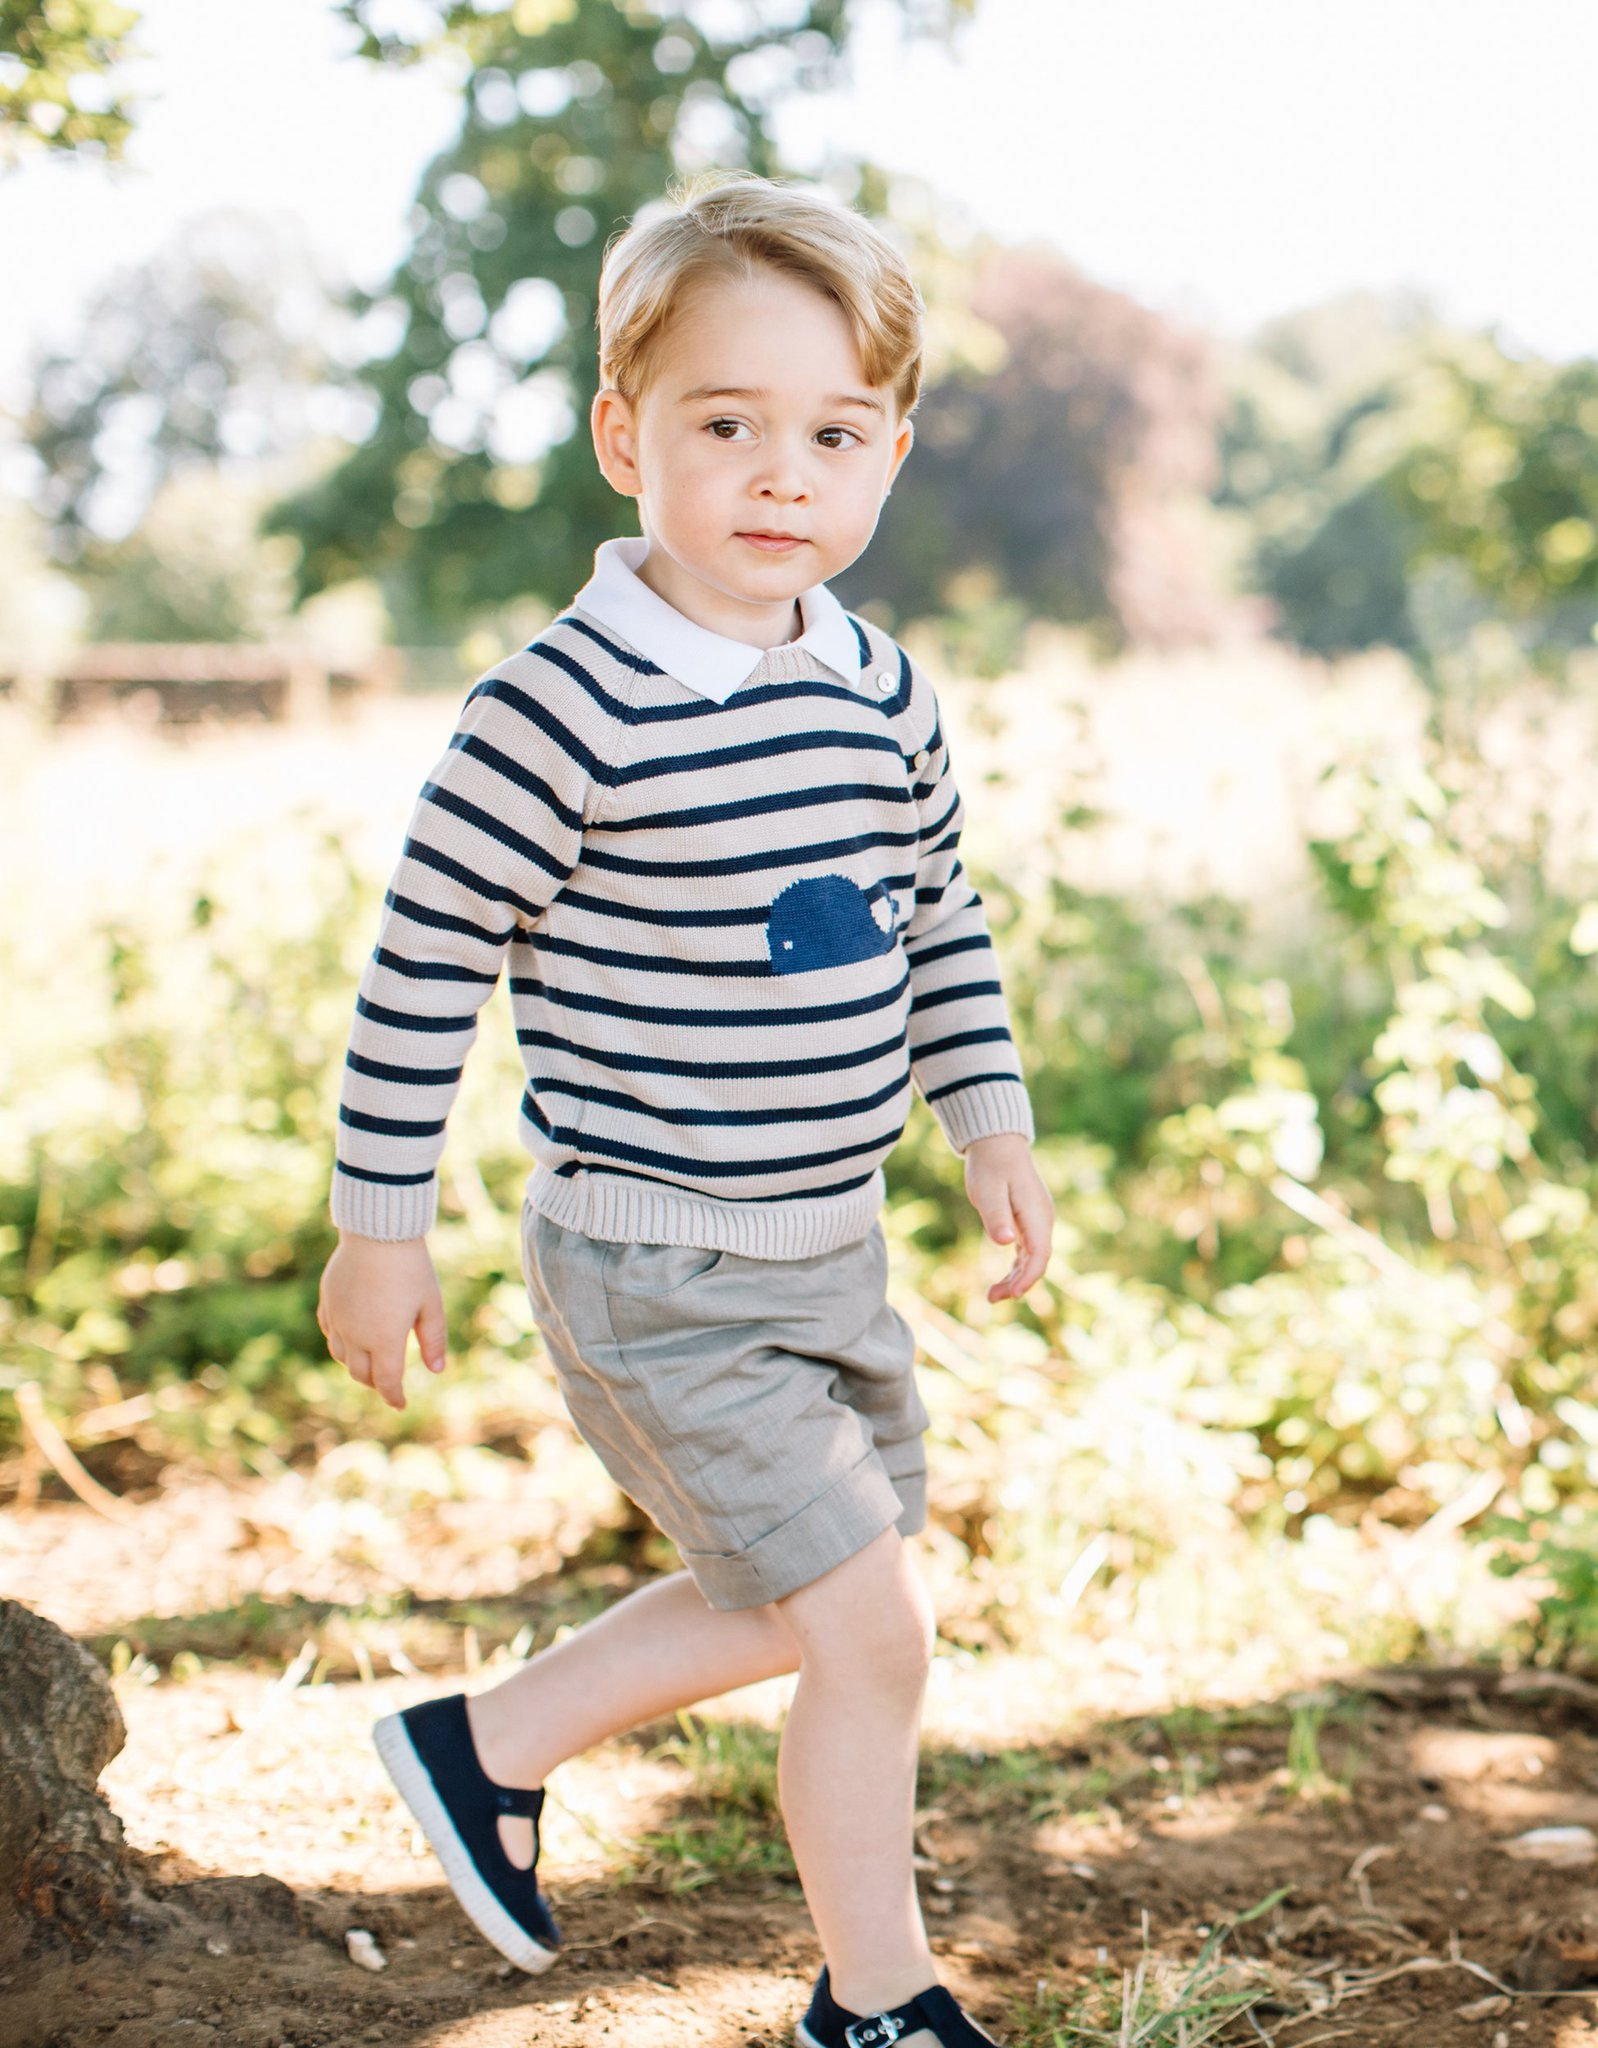 Here are some new photos of Prince George on his 3rd birthday! https://t.co/PYAf3YbOp0